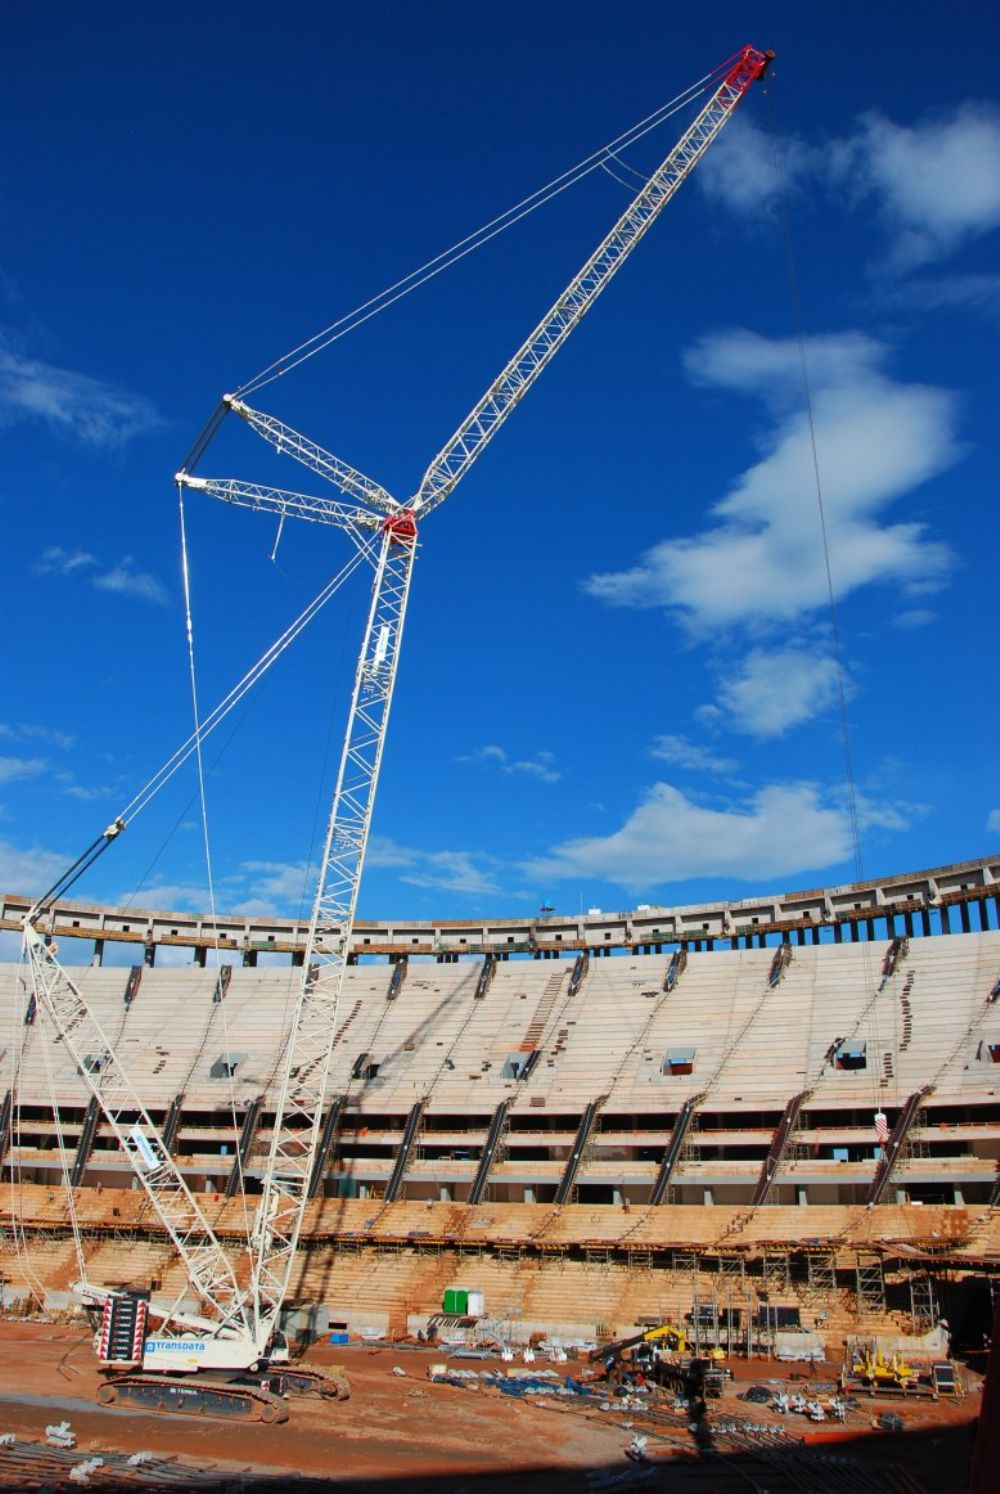 Material handling specialist Transdata chose a 661 ton (600 t) capacity Terex CC 2800-1 crawler crane to help construct the stadium's environmentally friendly rooftop, which incorporates photovoltaic cells capable of generating all the power require